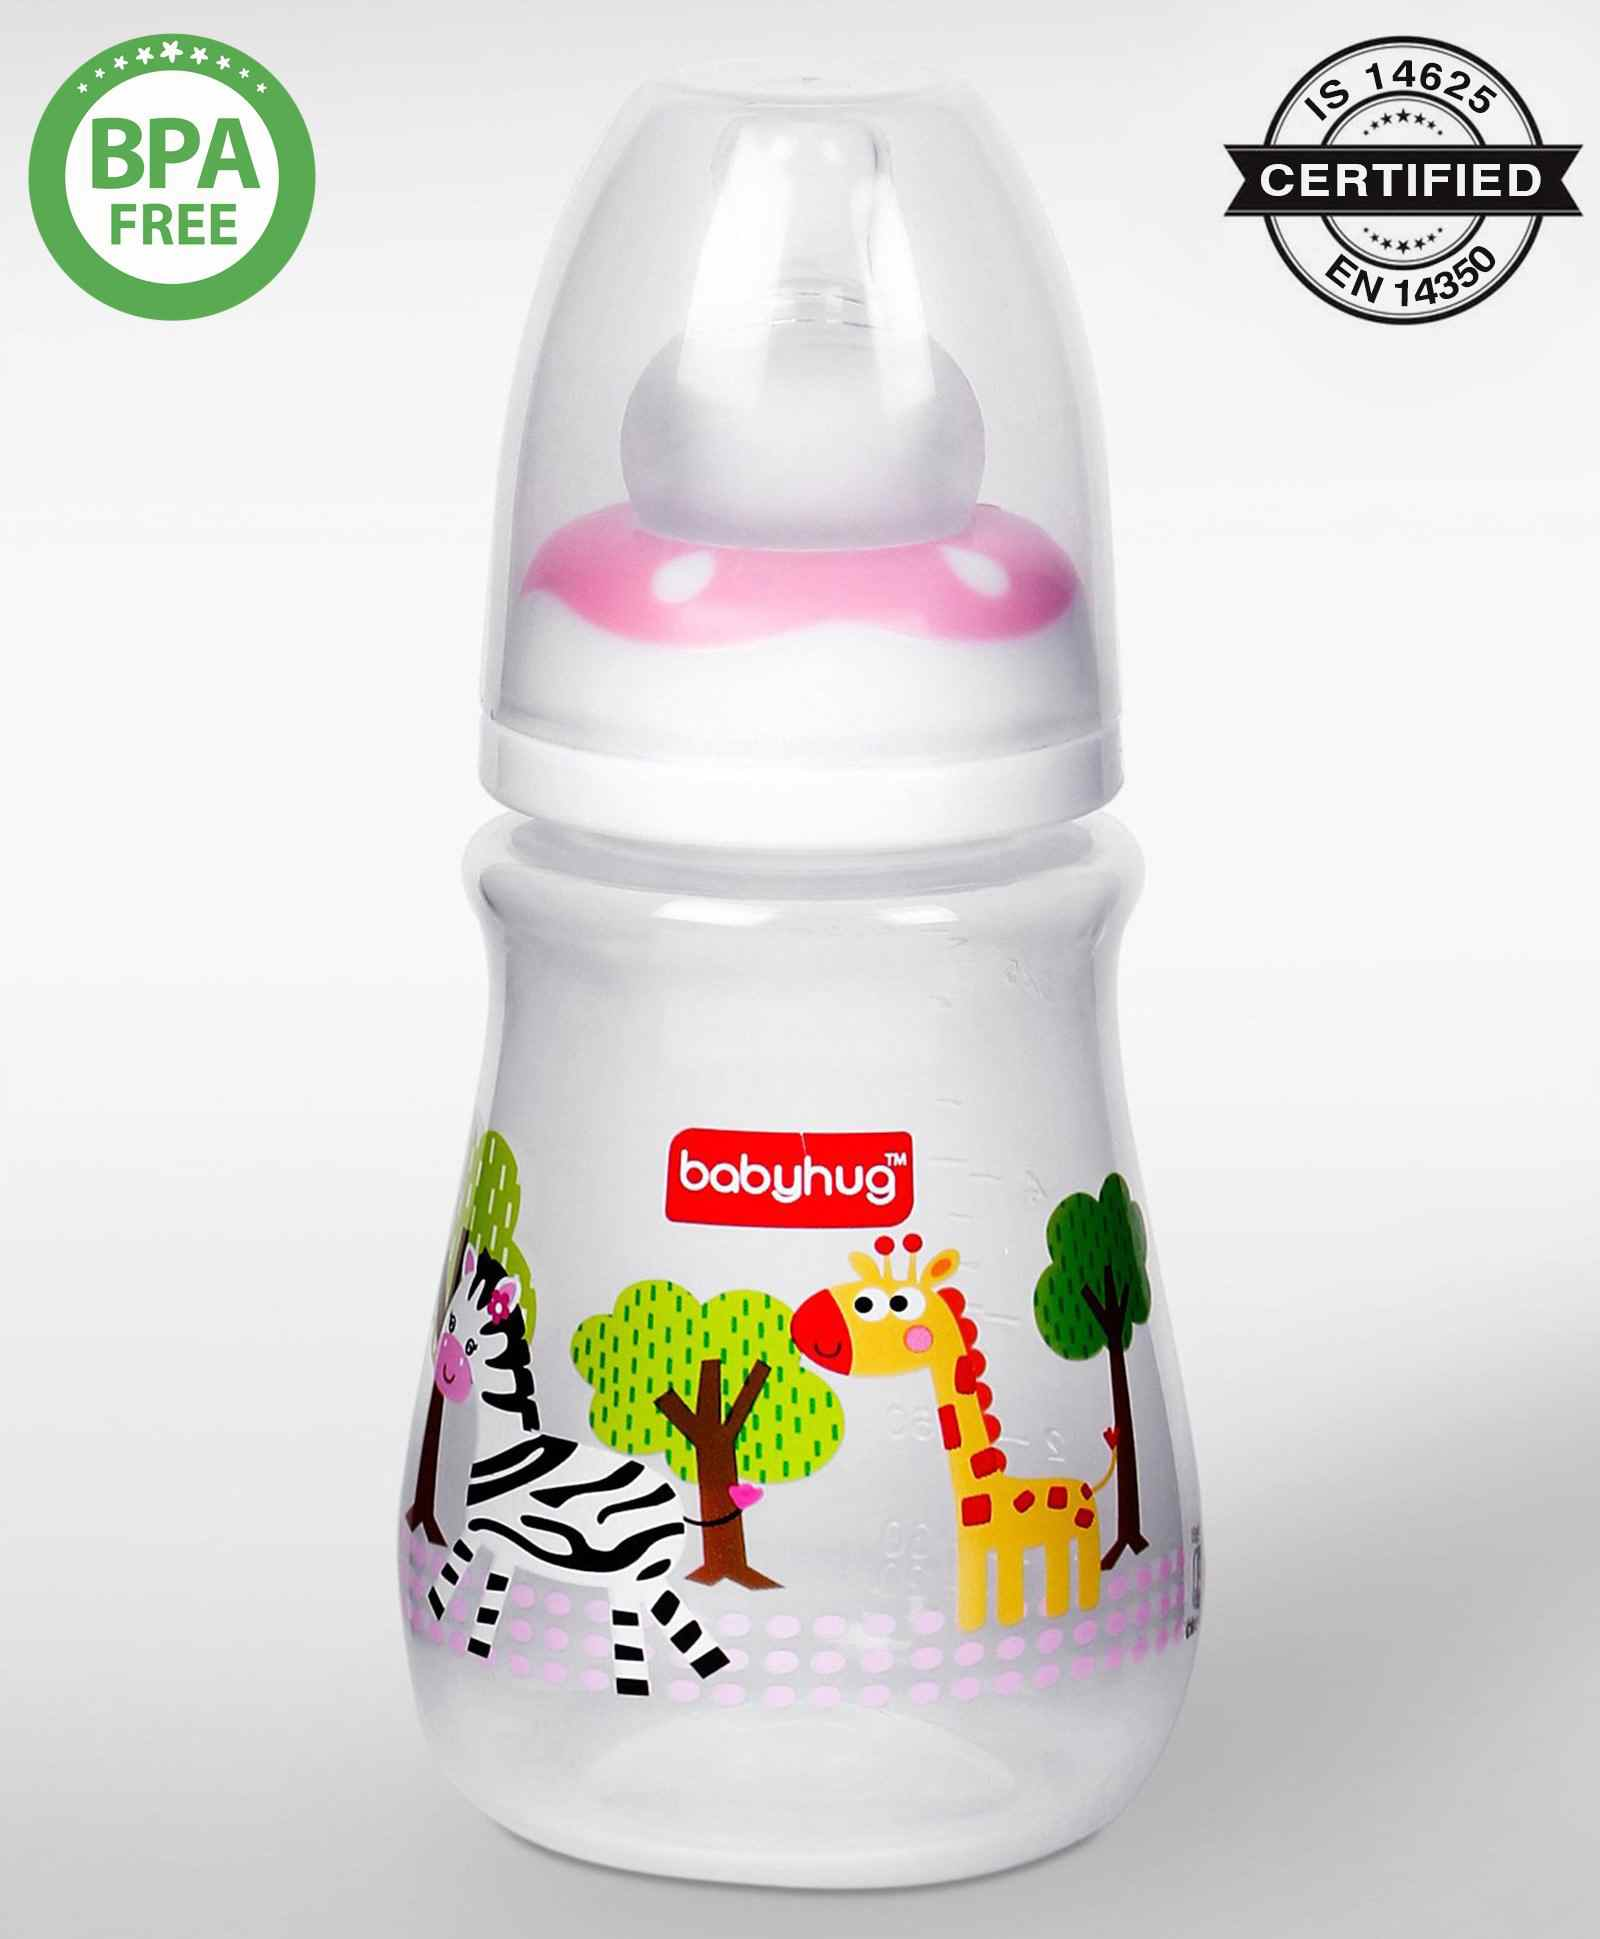 Babyhug Polypropylene Drop Feeding Bottle Pink 150 Ml Online In Beauty Barn Mom All Mane Hair Shampo0 250 Select Color